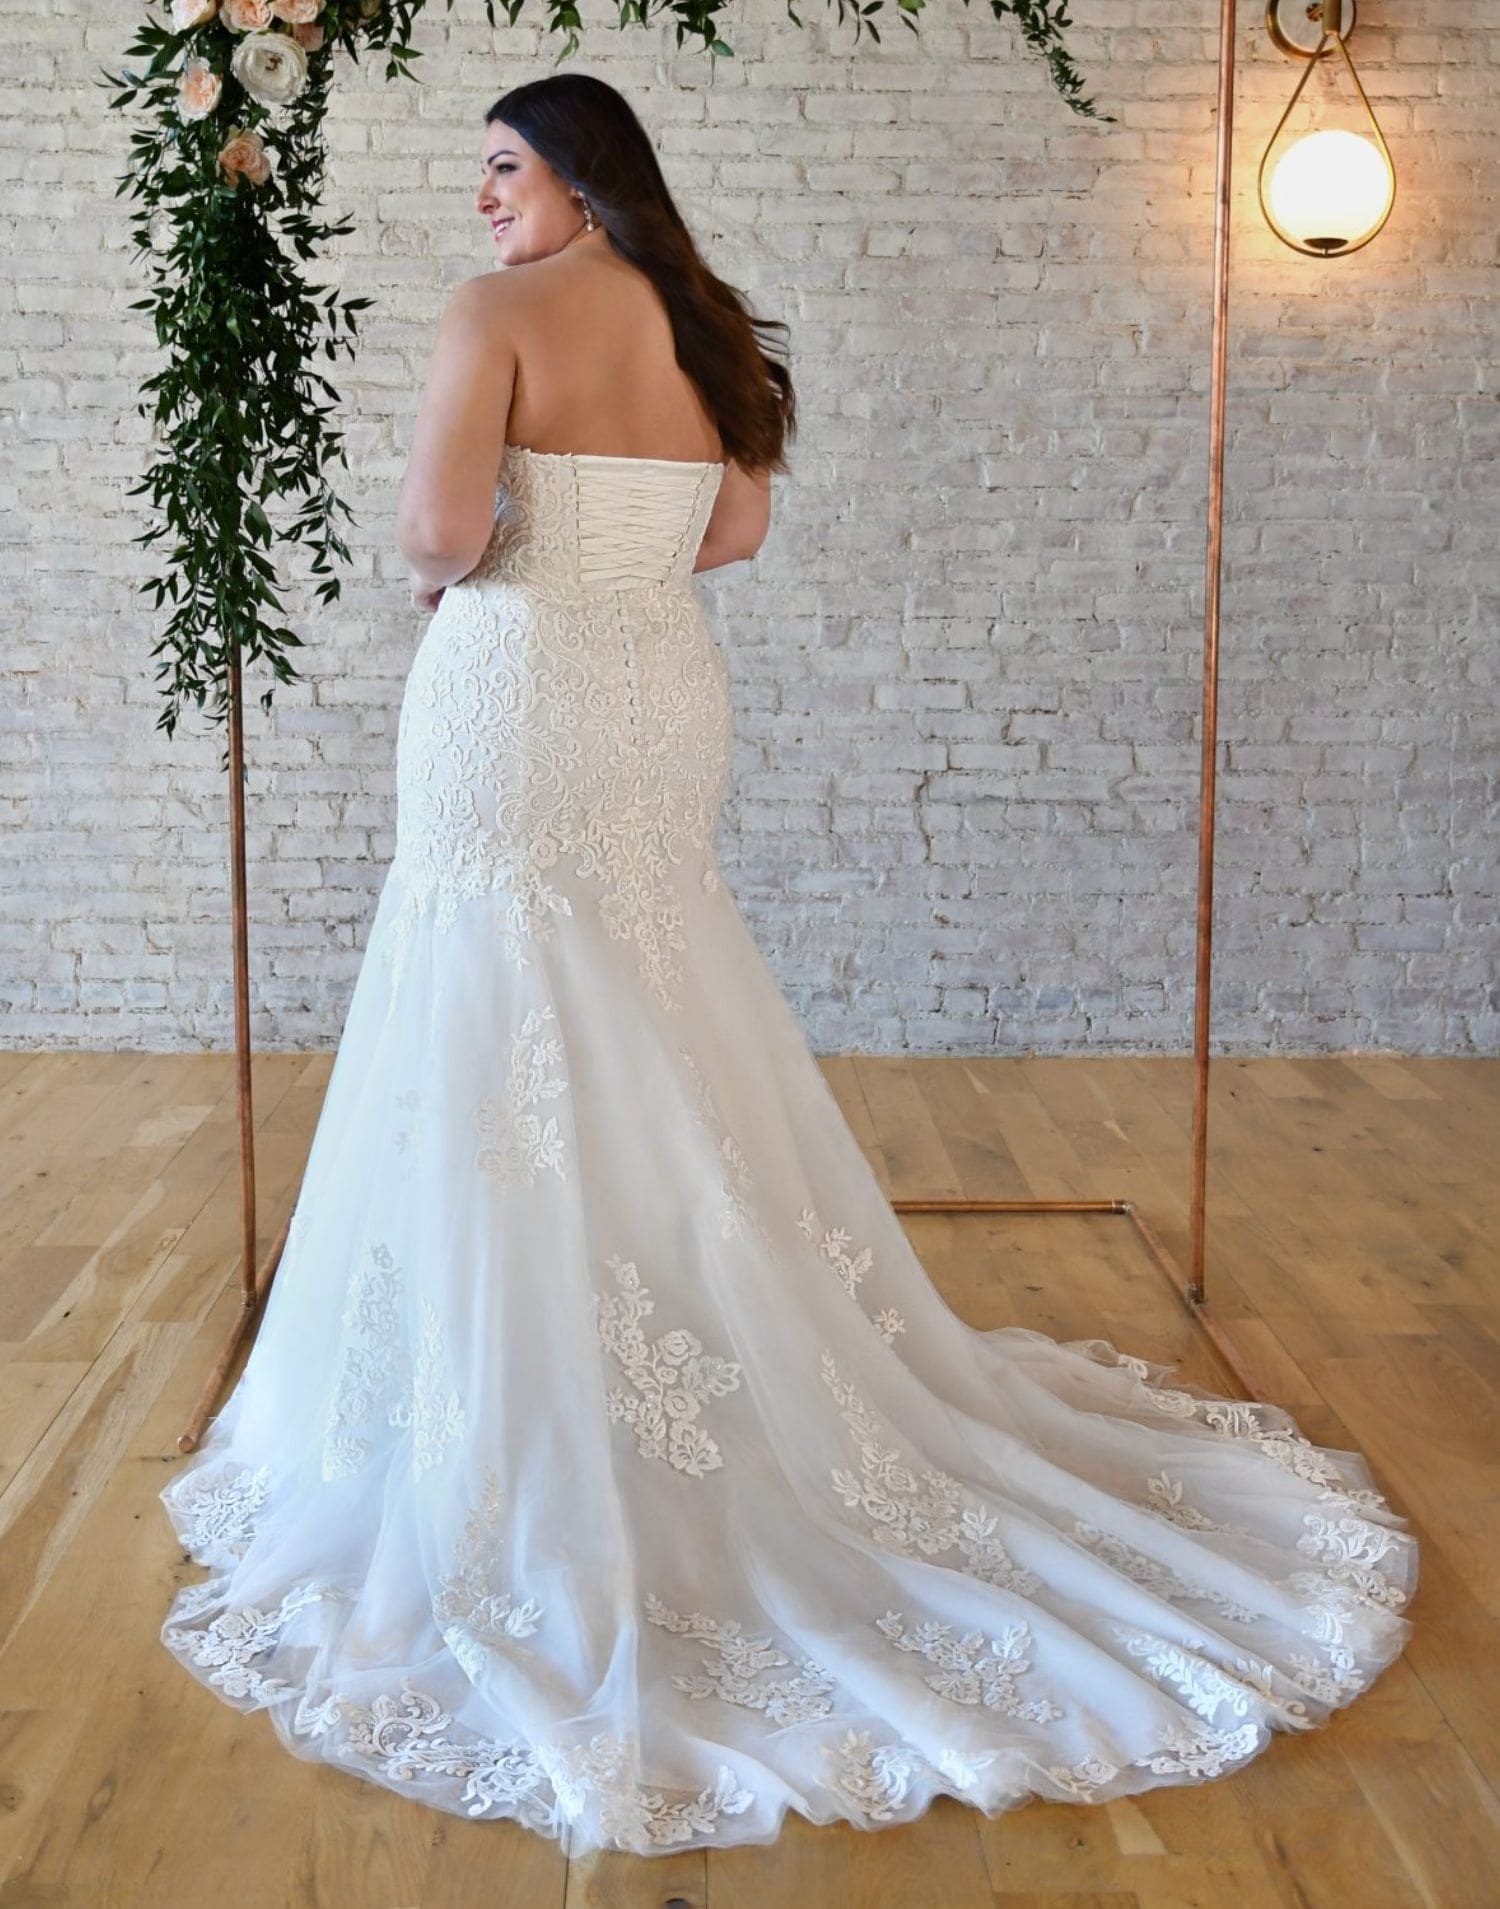 Plus Size Wedding Dress From Stella York – 7323 Curvy – Front View